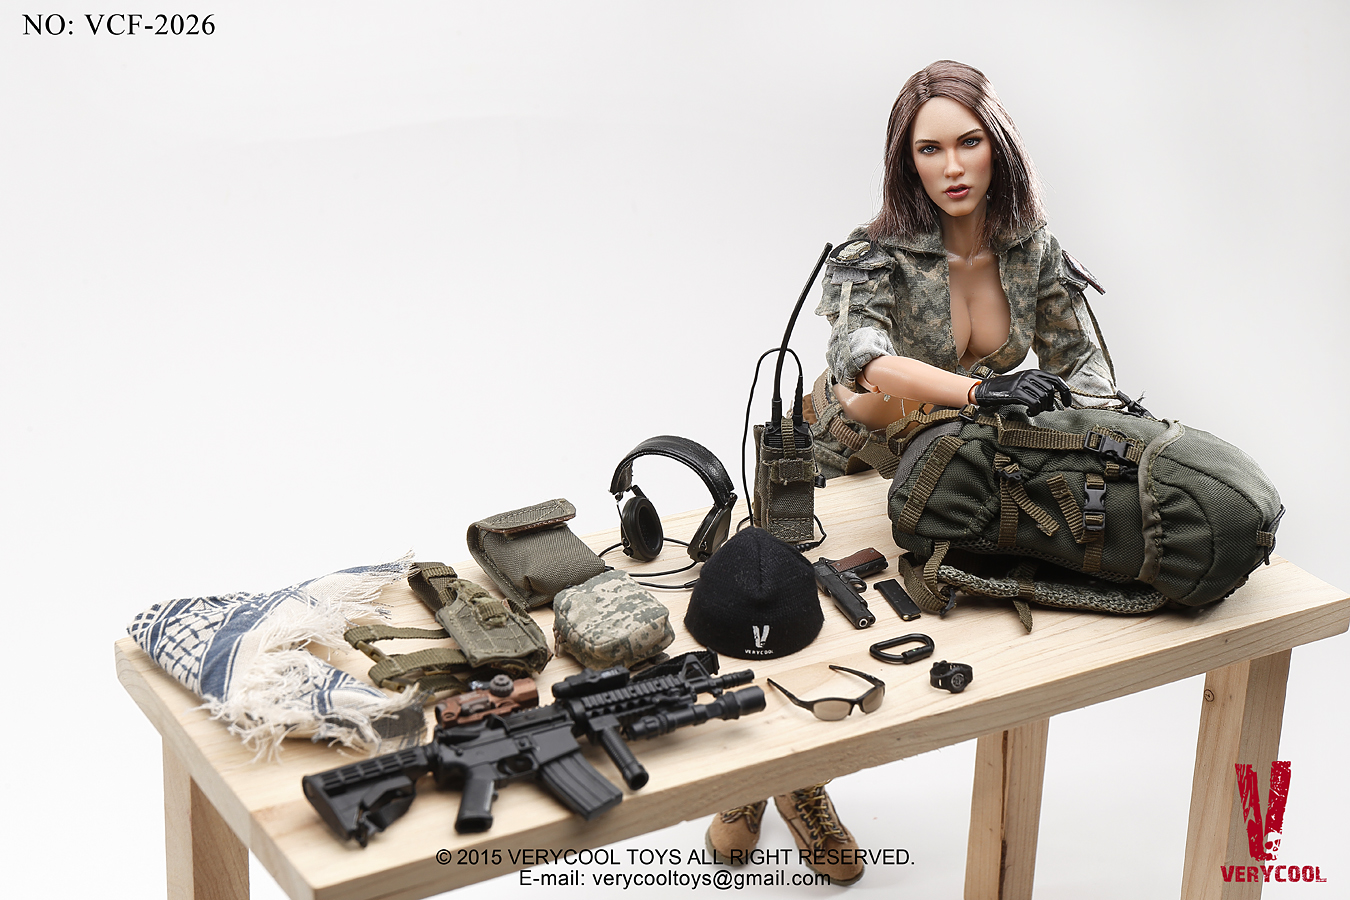 Really Really Cool Toys : Toyhaven verycool vcf th scale acu camo female